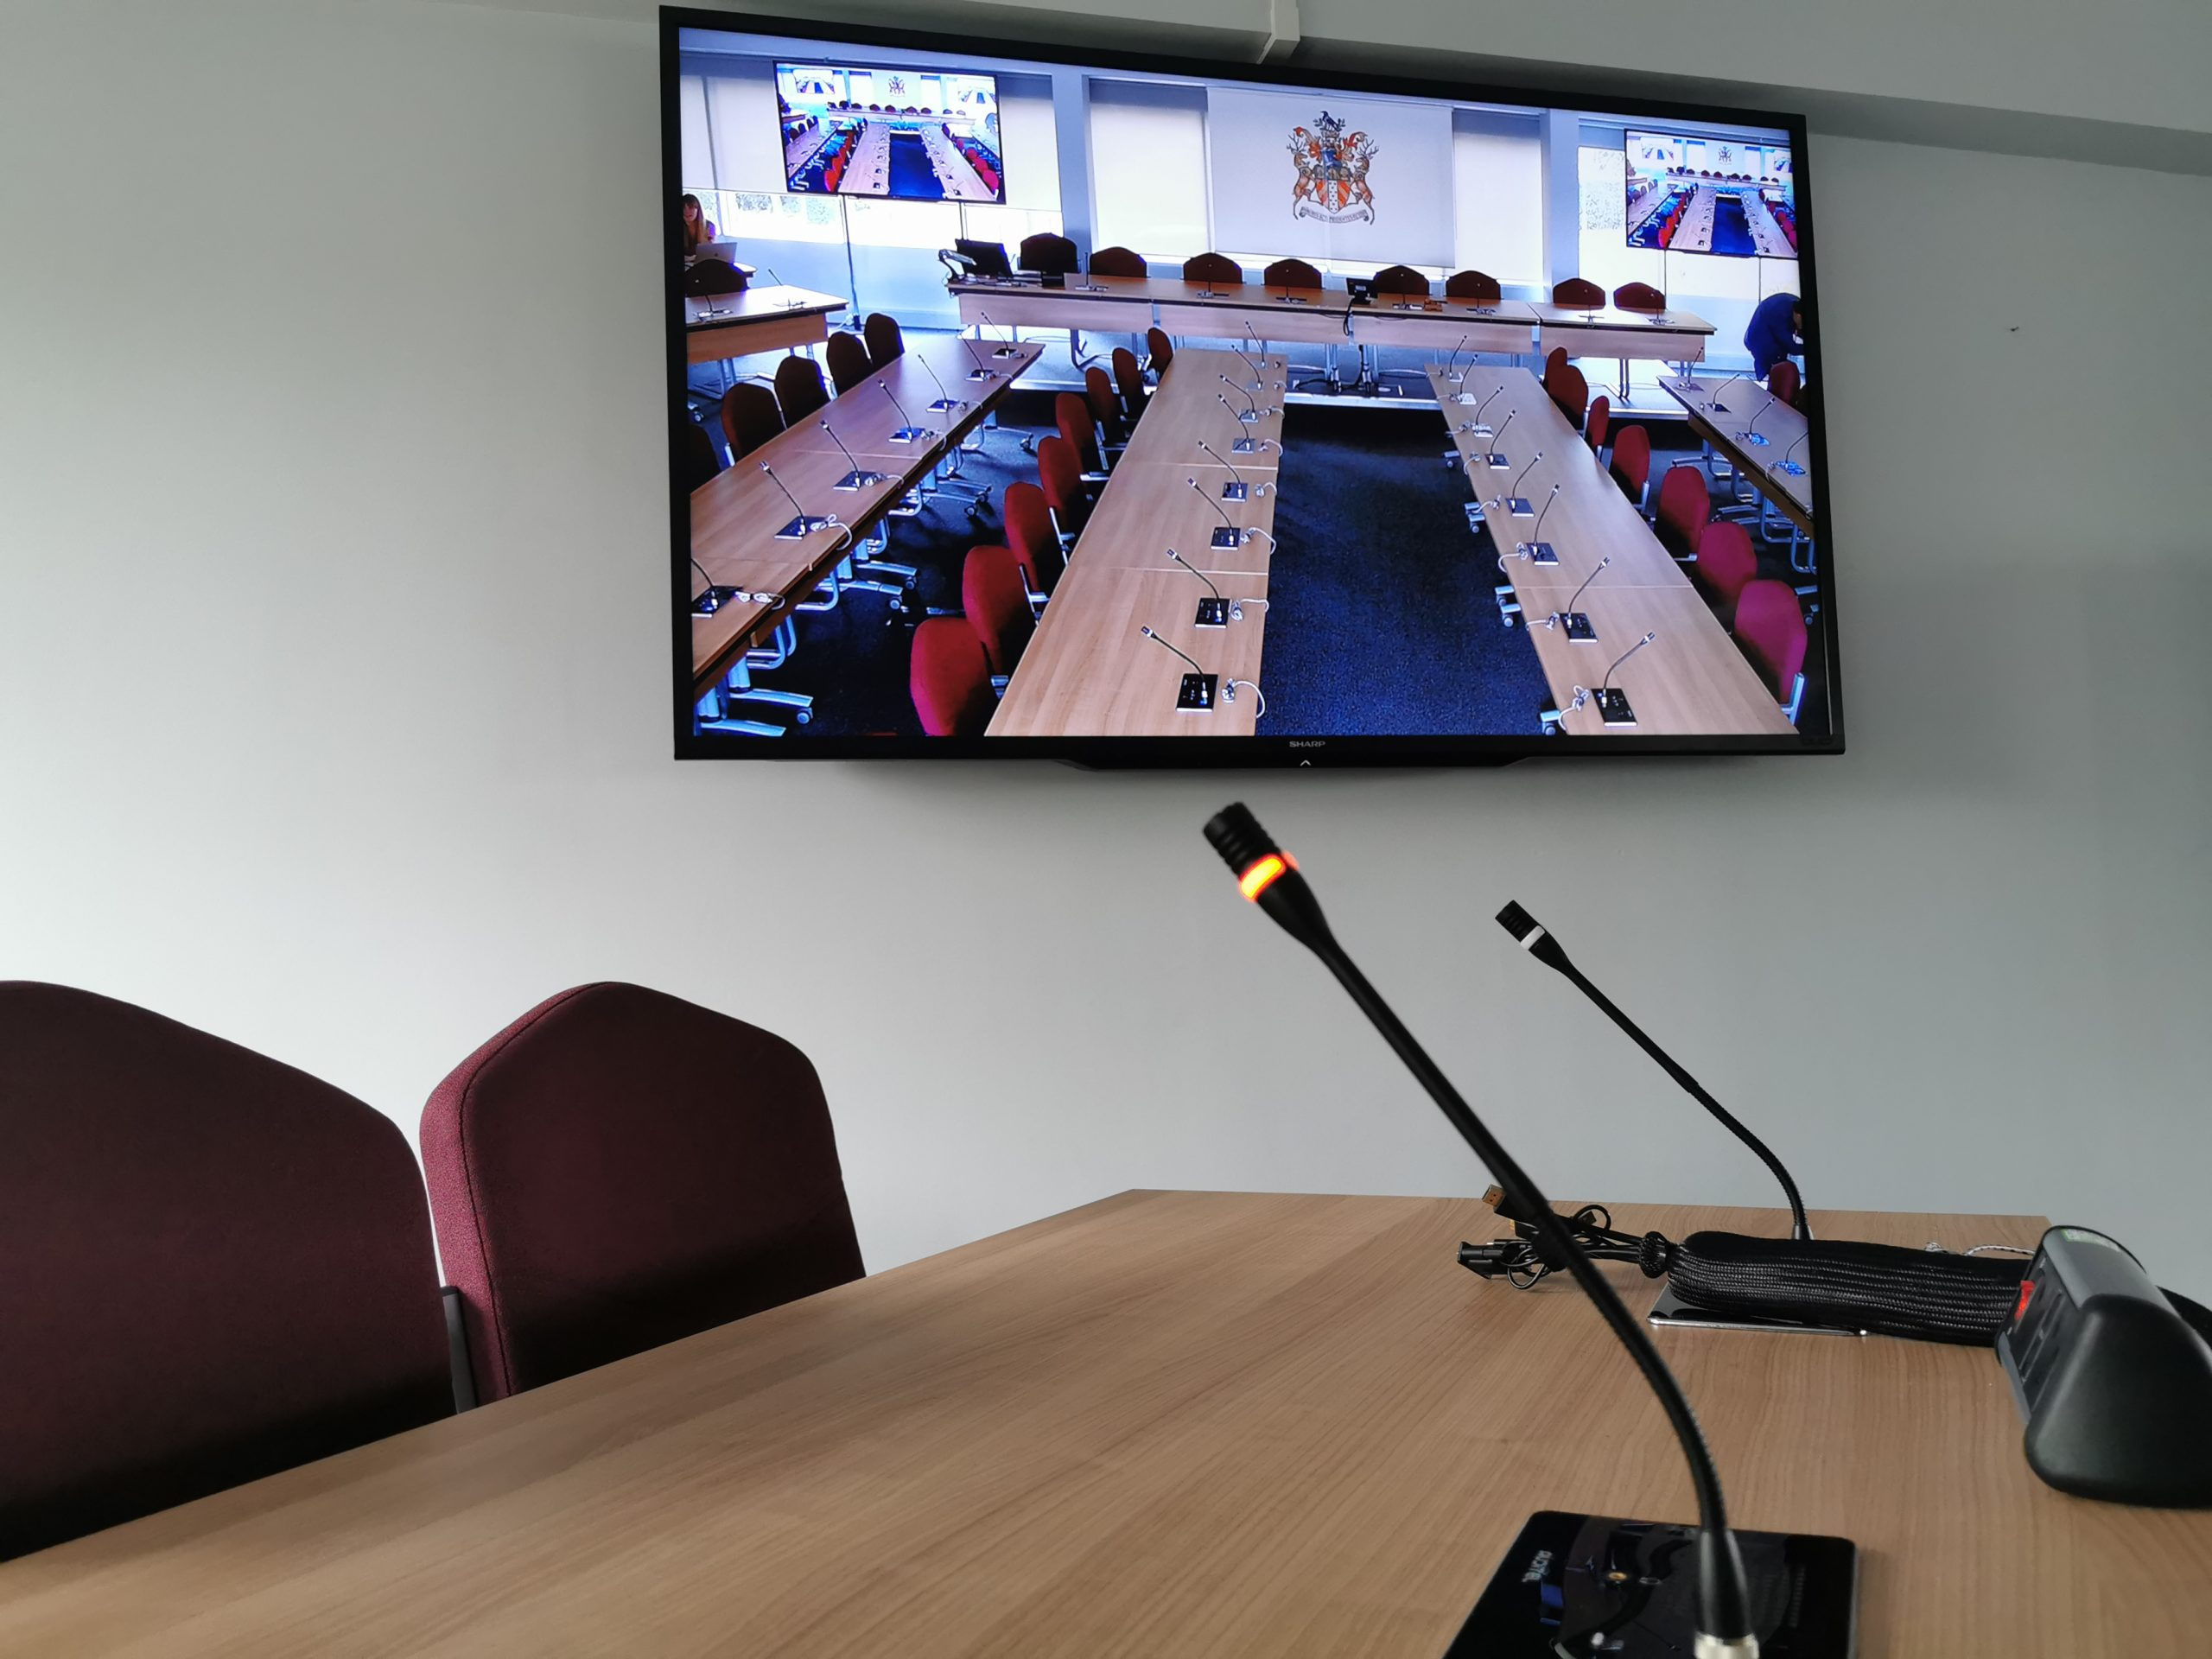 conference microphones and tv screen with live broadcast